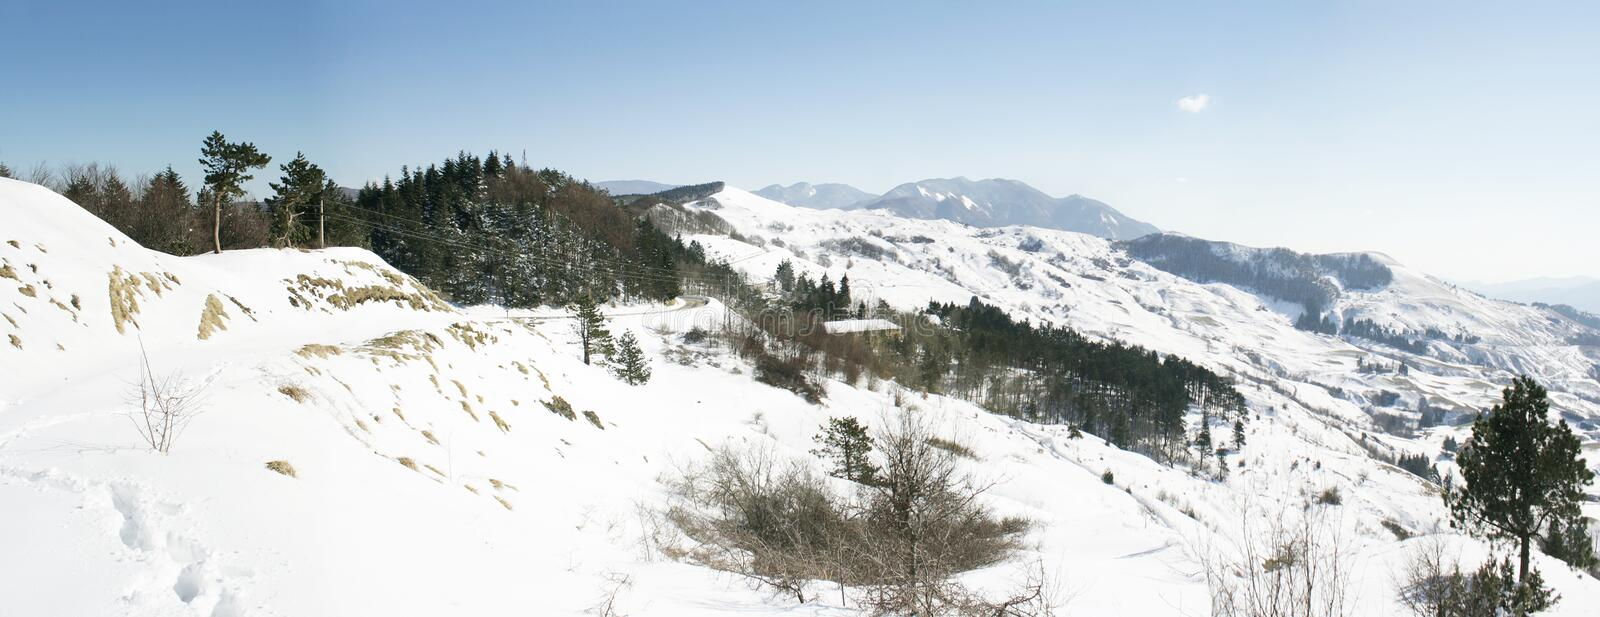 Download Wonderful Scenic View Of A Mountain Range Stock Photo - Image: 29438932